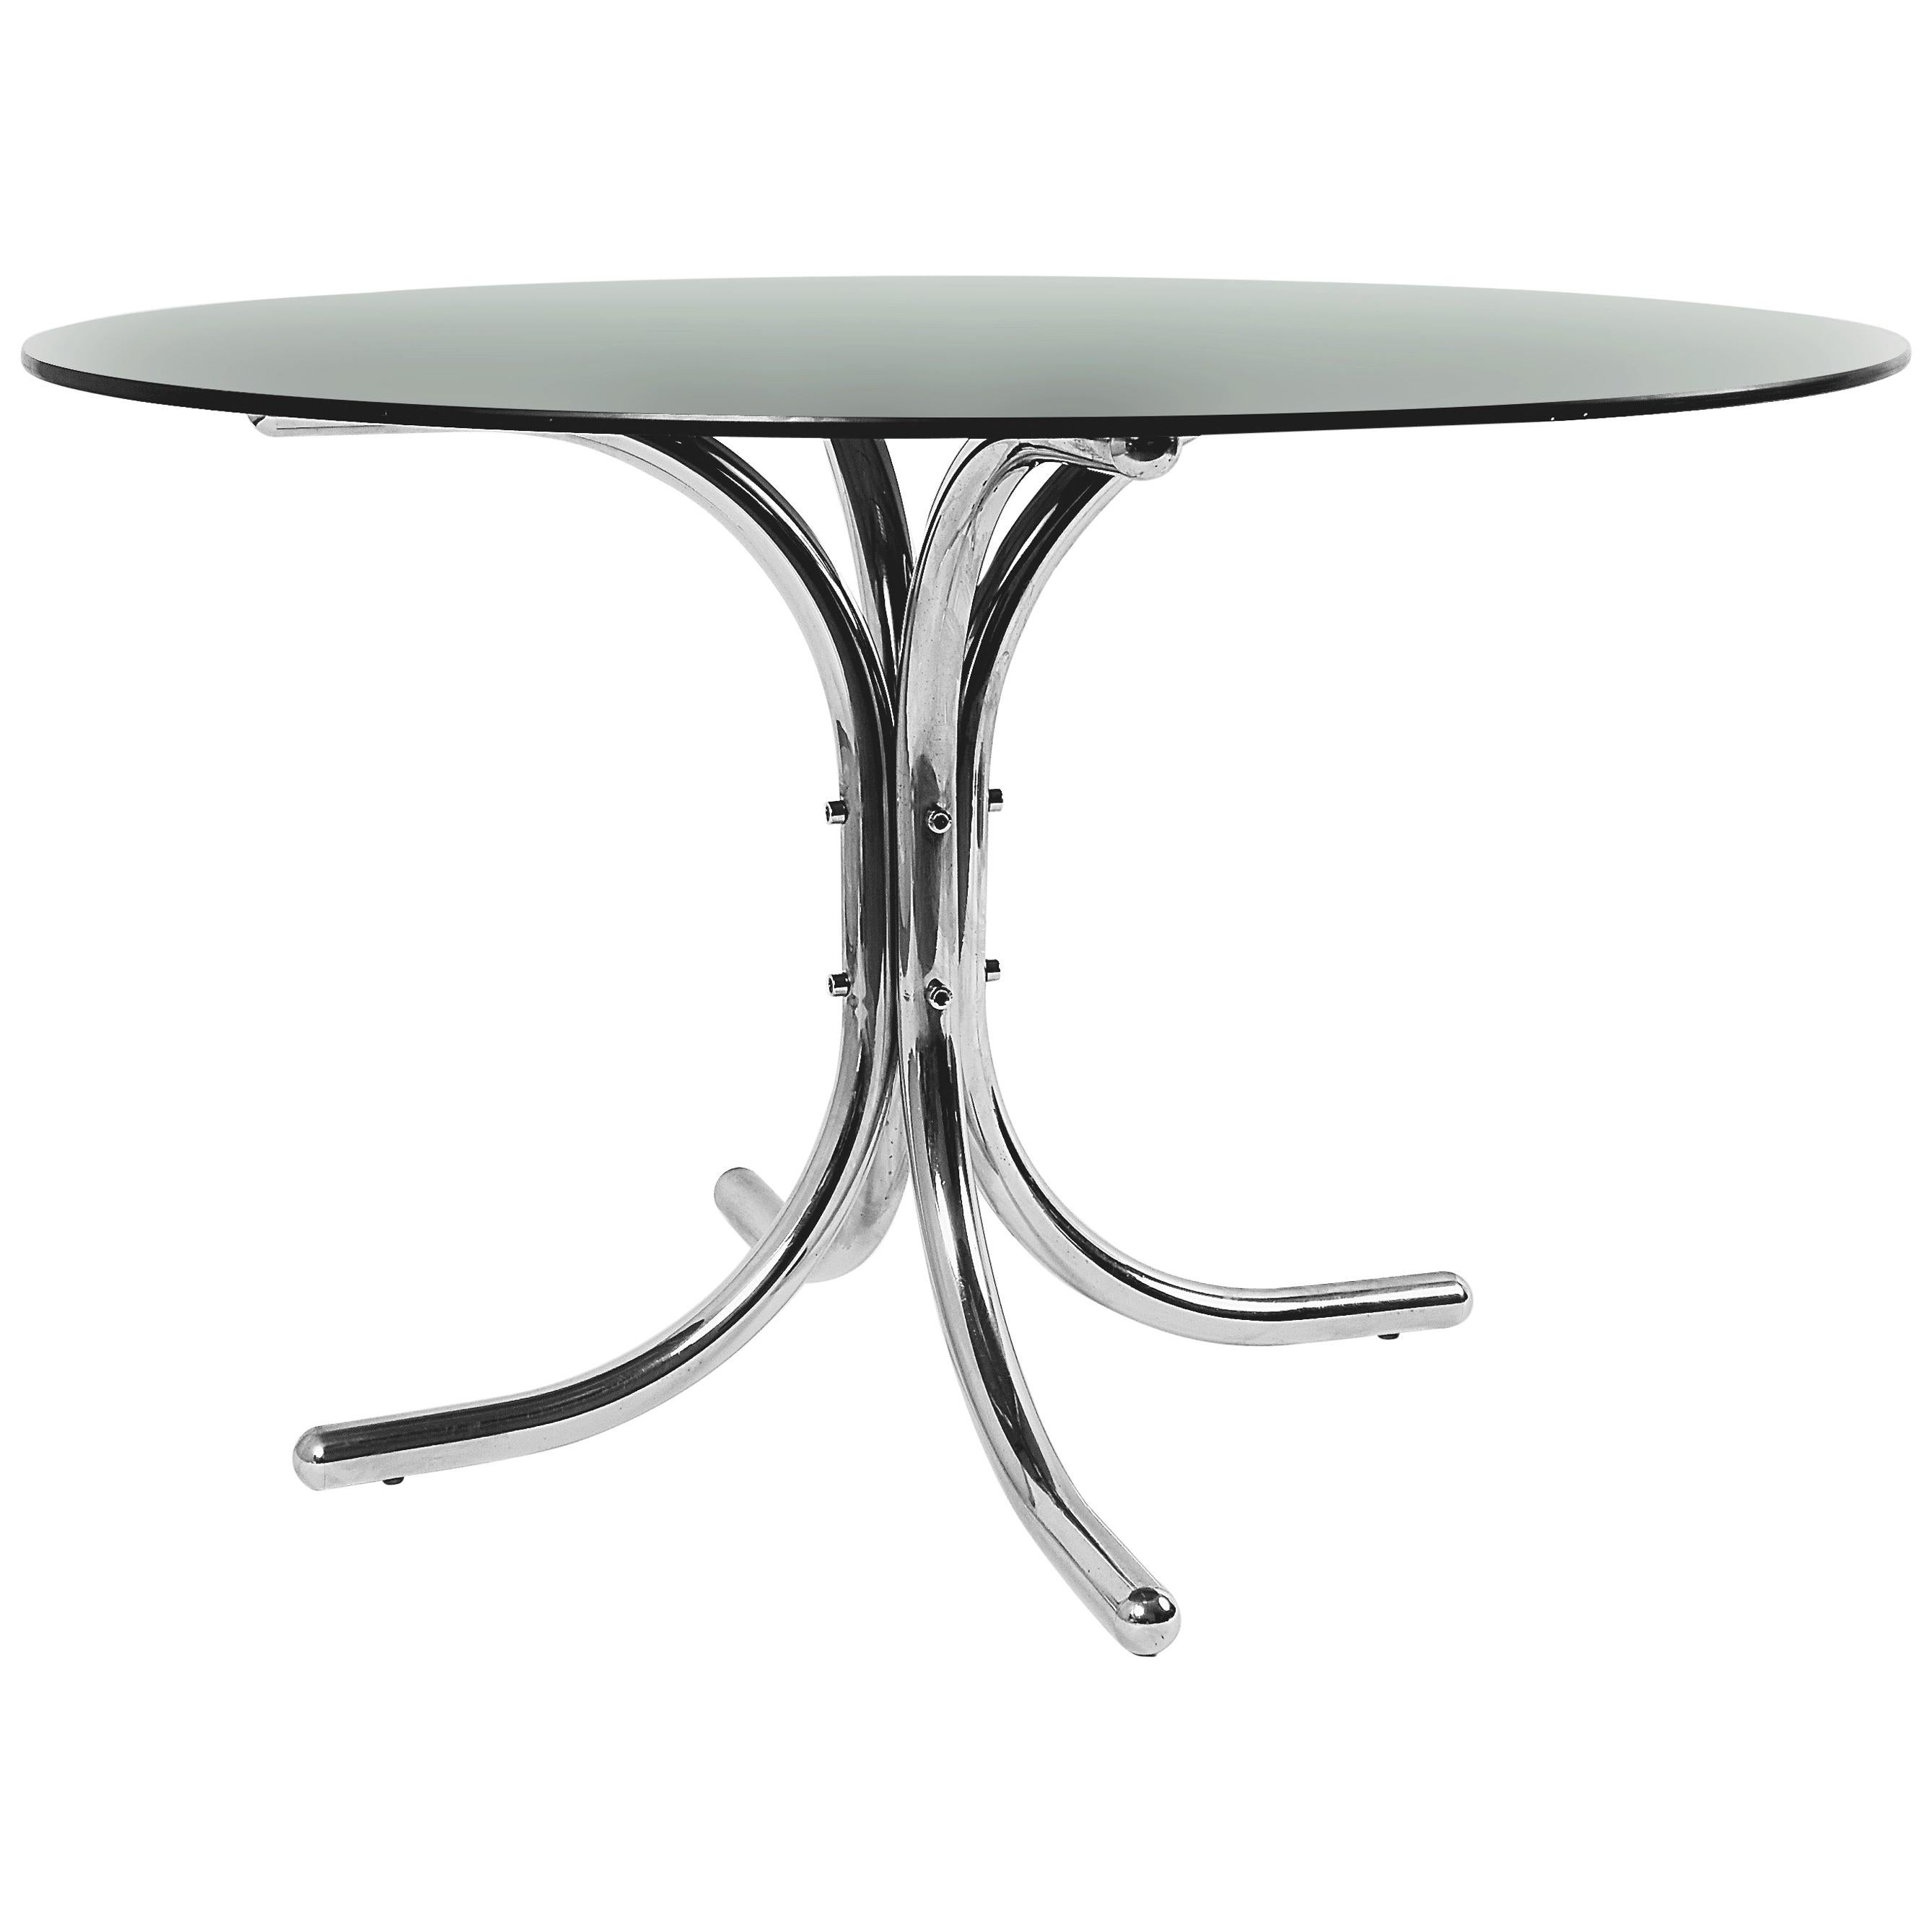 Italian Chrome Base Smoked Glass Top Dining Table in Giotto Stoppino Style 1970s